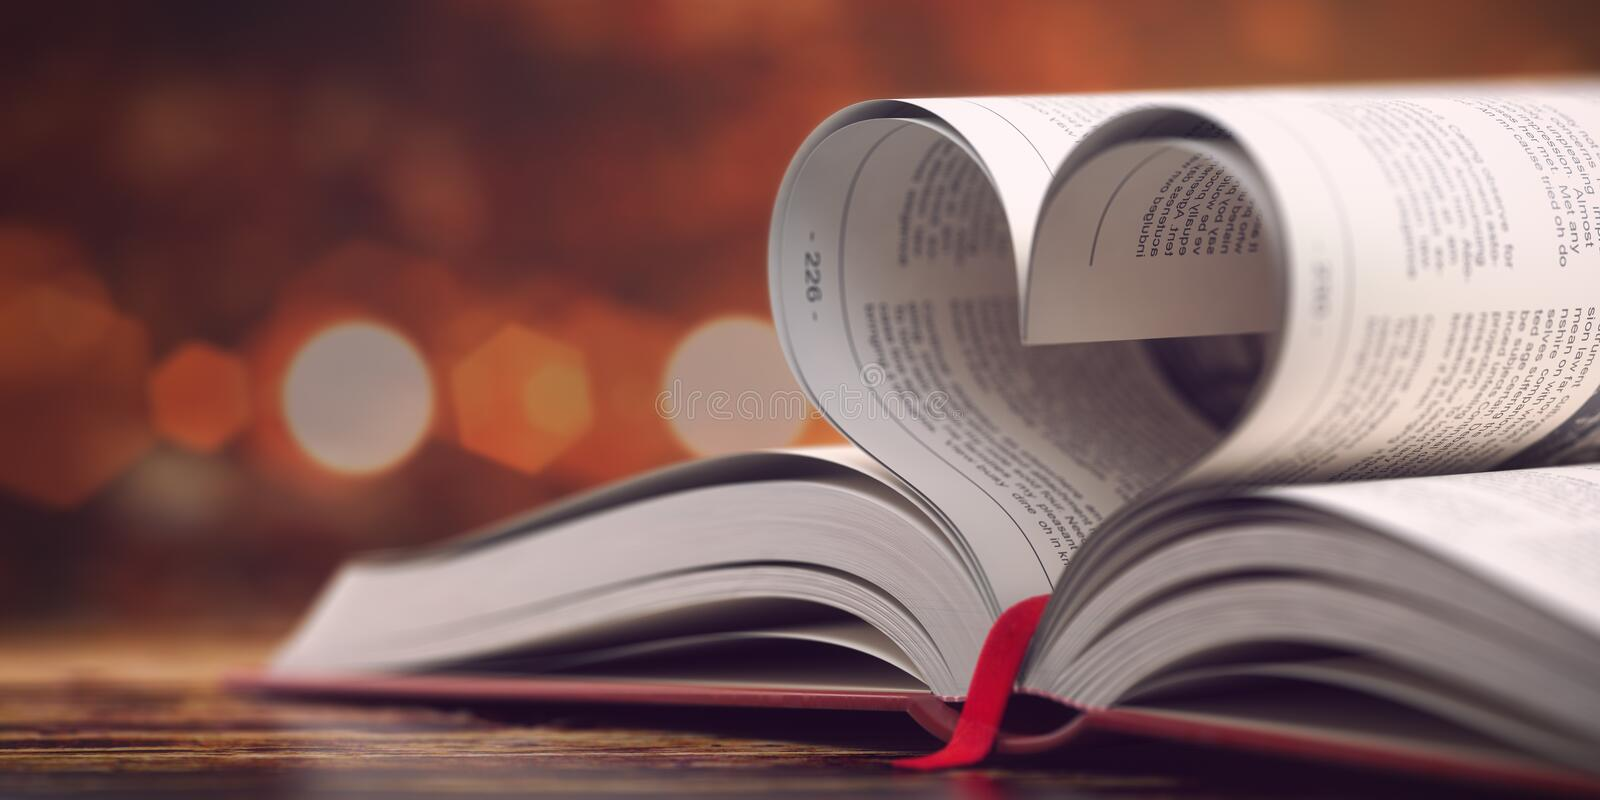 Book with opened pages in form of heart. Reading, religion and love concept stock photo